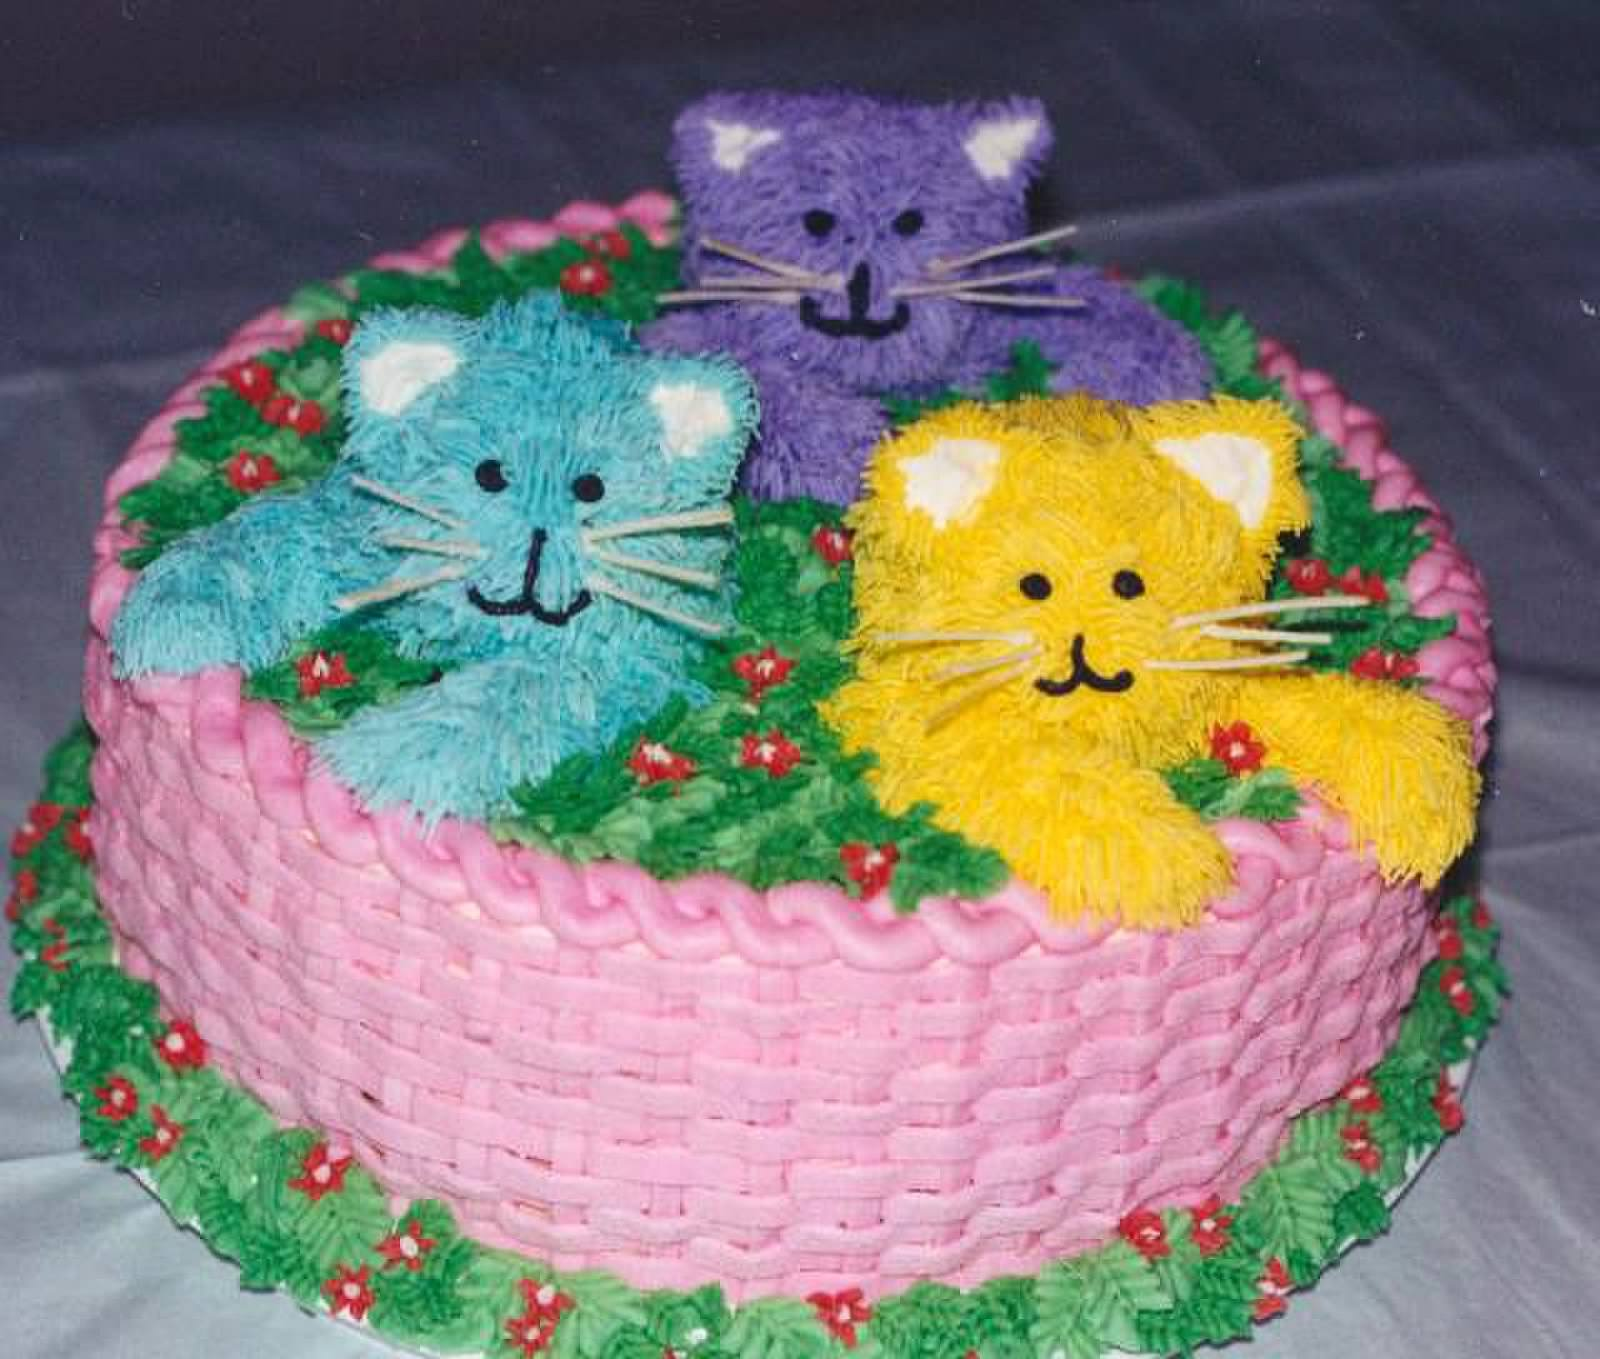 Kitten With Cake